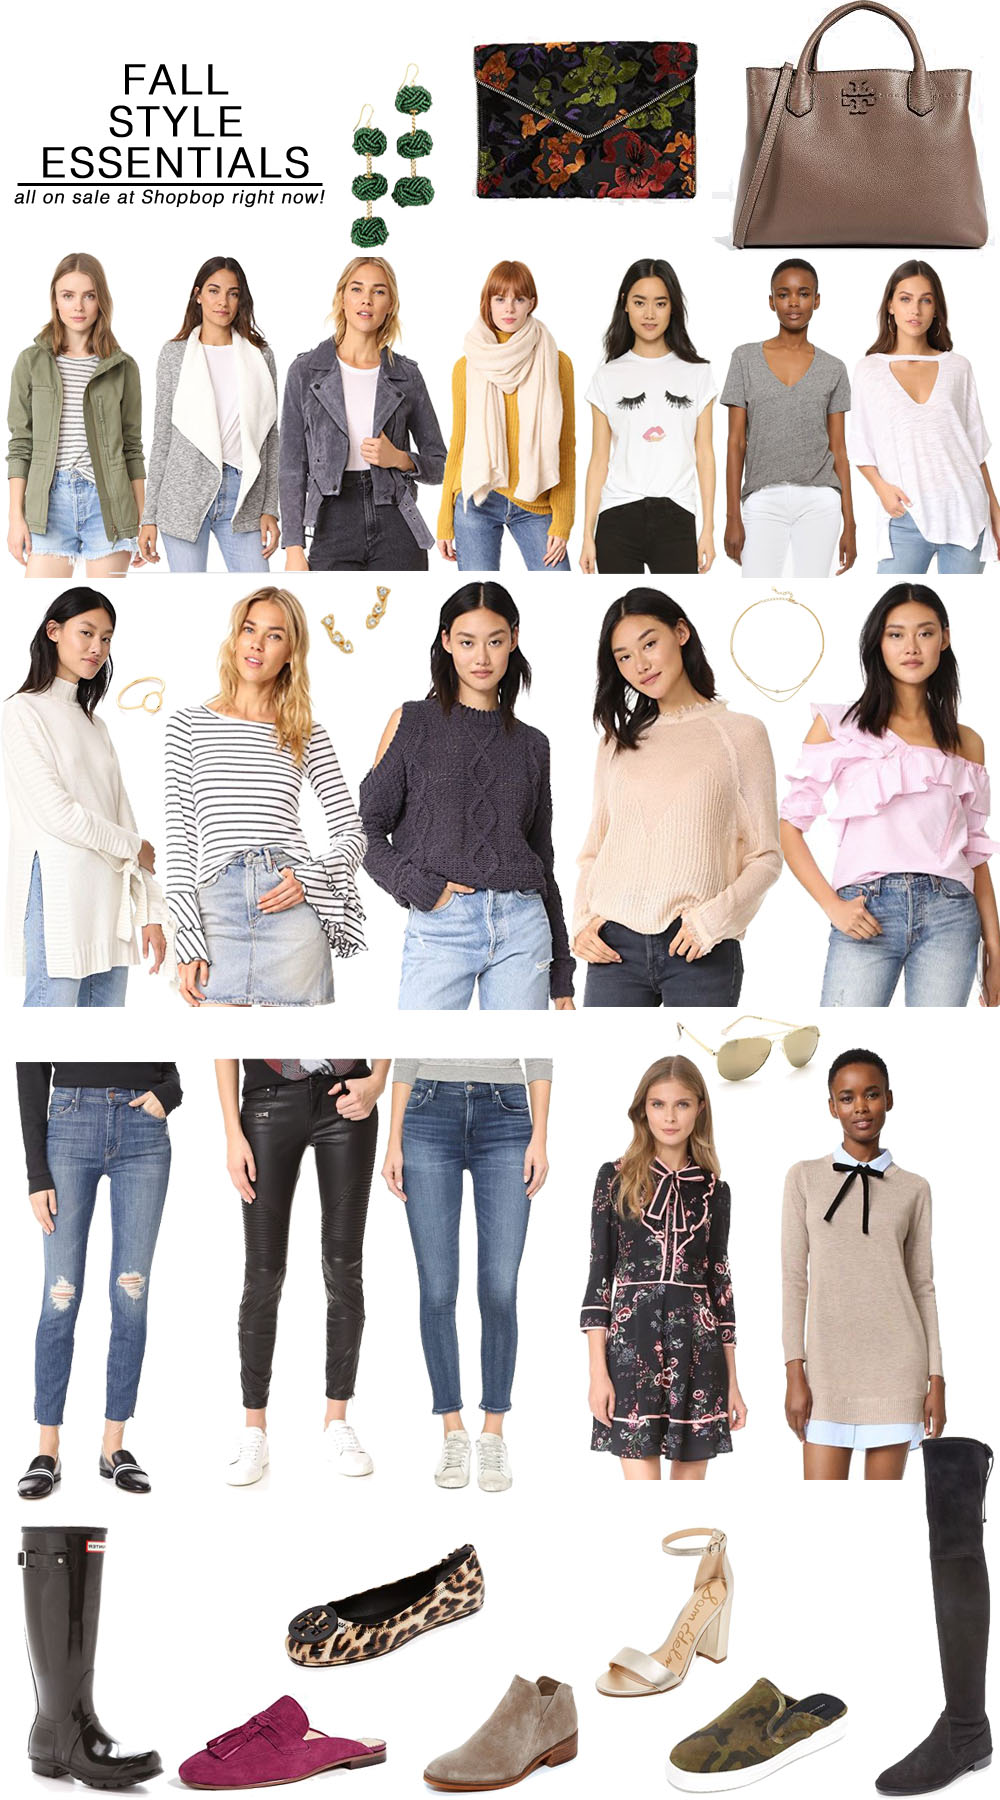 Best Fall Style Essentials from Shopbop // the modern savvy, a life & style blog